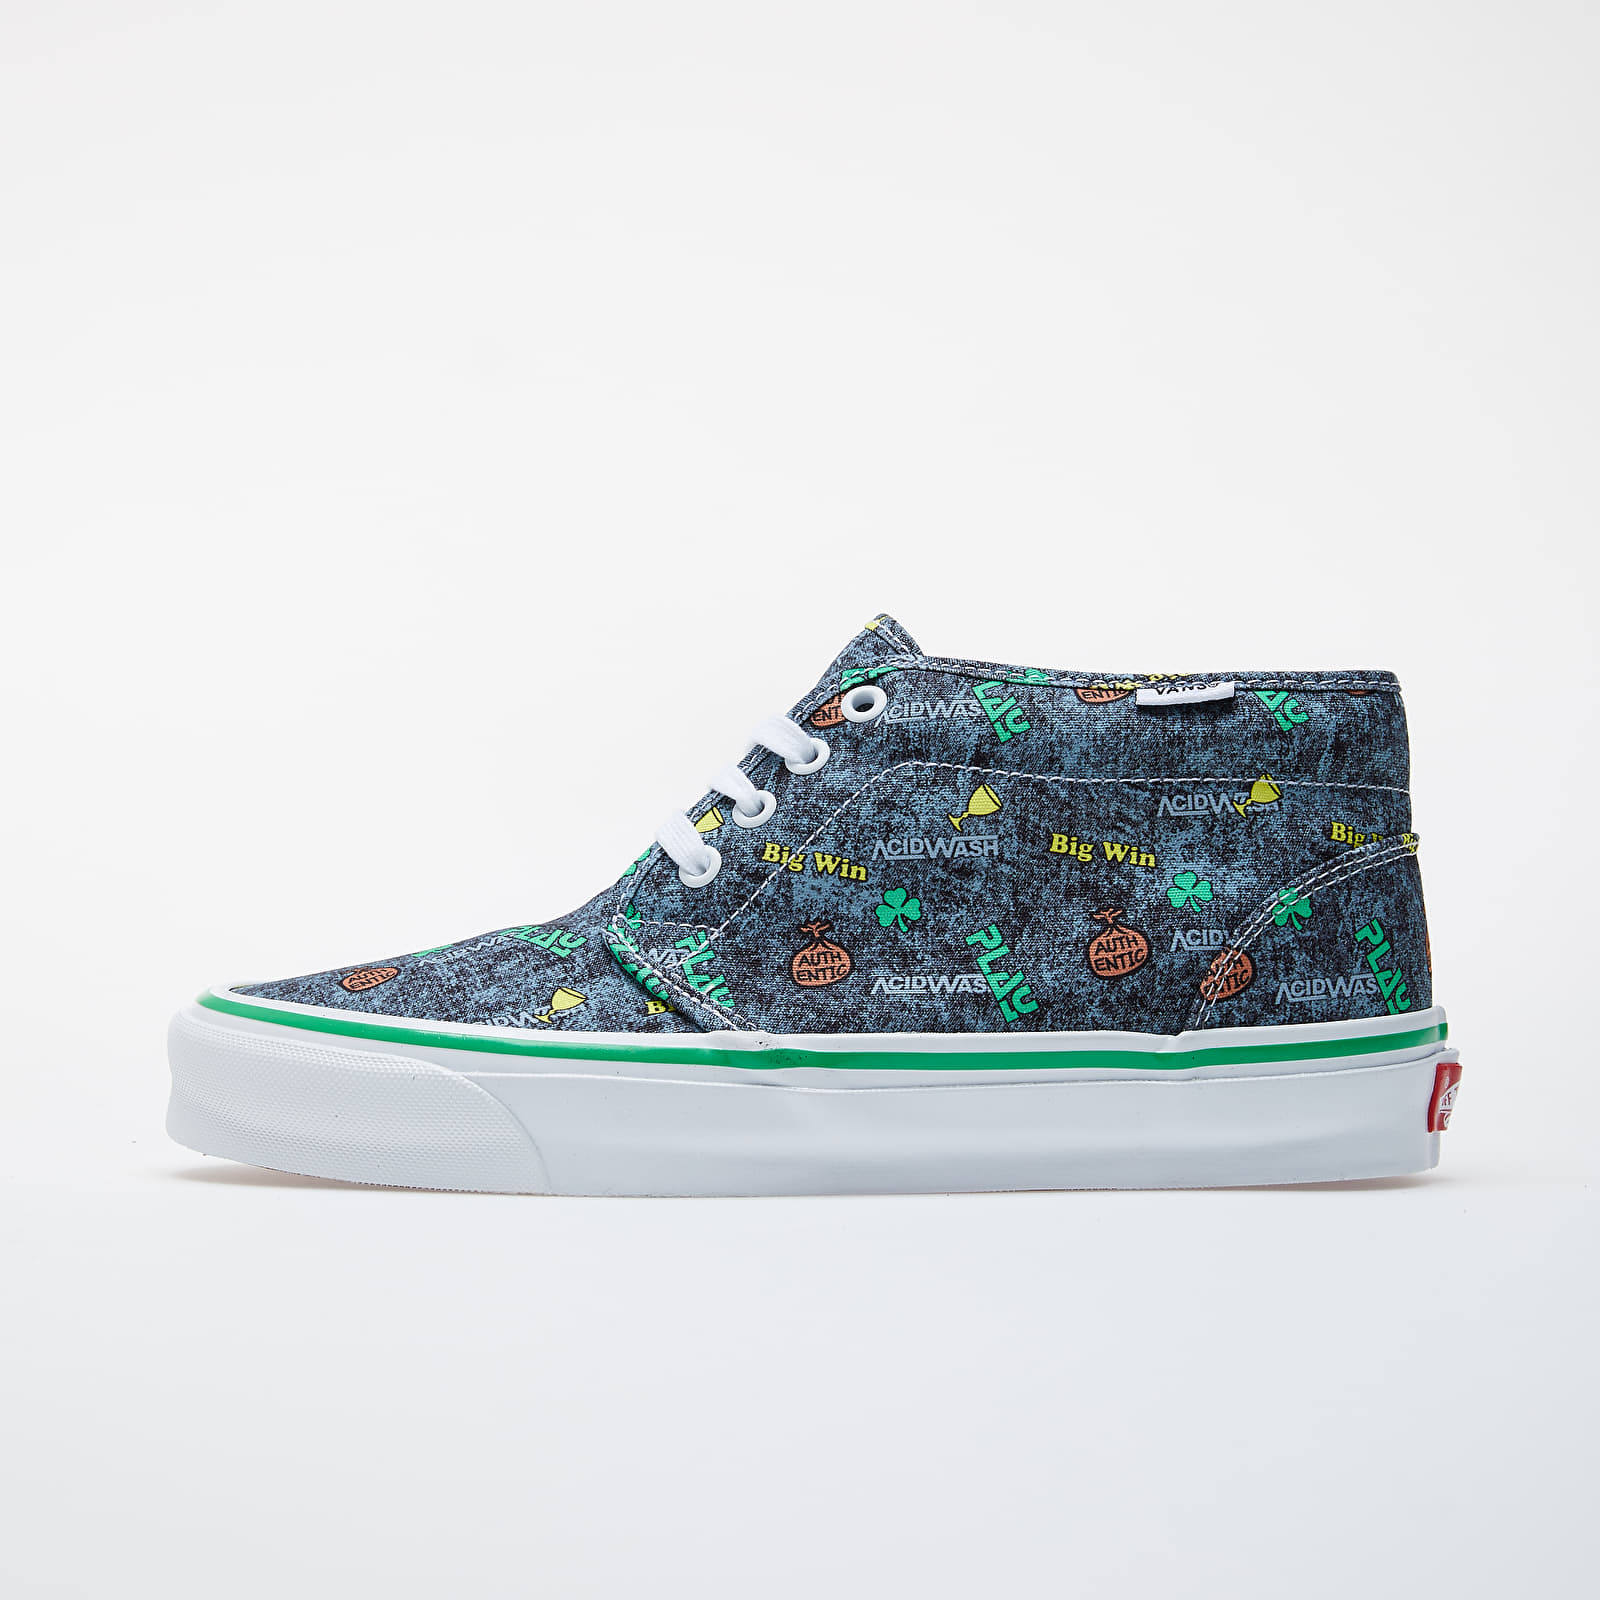 Men's shoes Vans x Fergus Purcell OG Chukka LX (Fergadelic) Acidwash/ Play